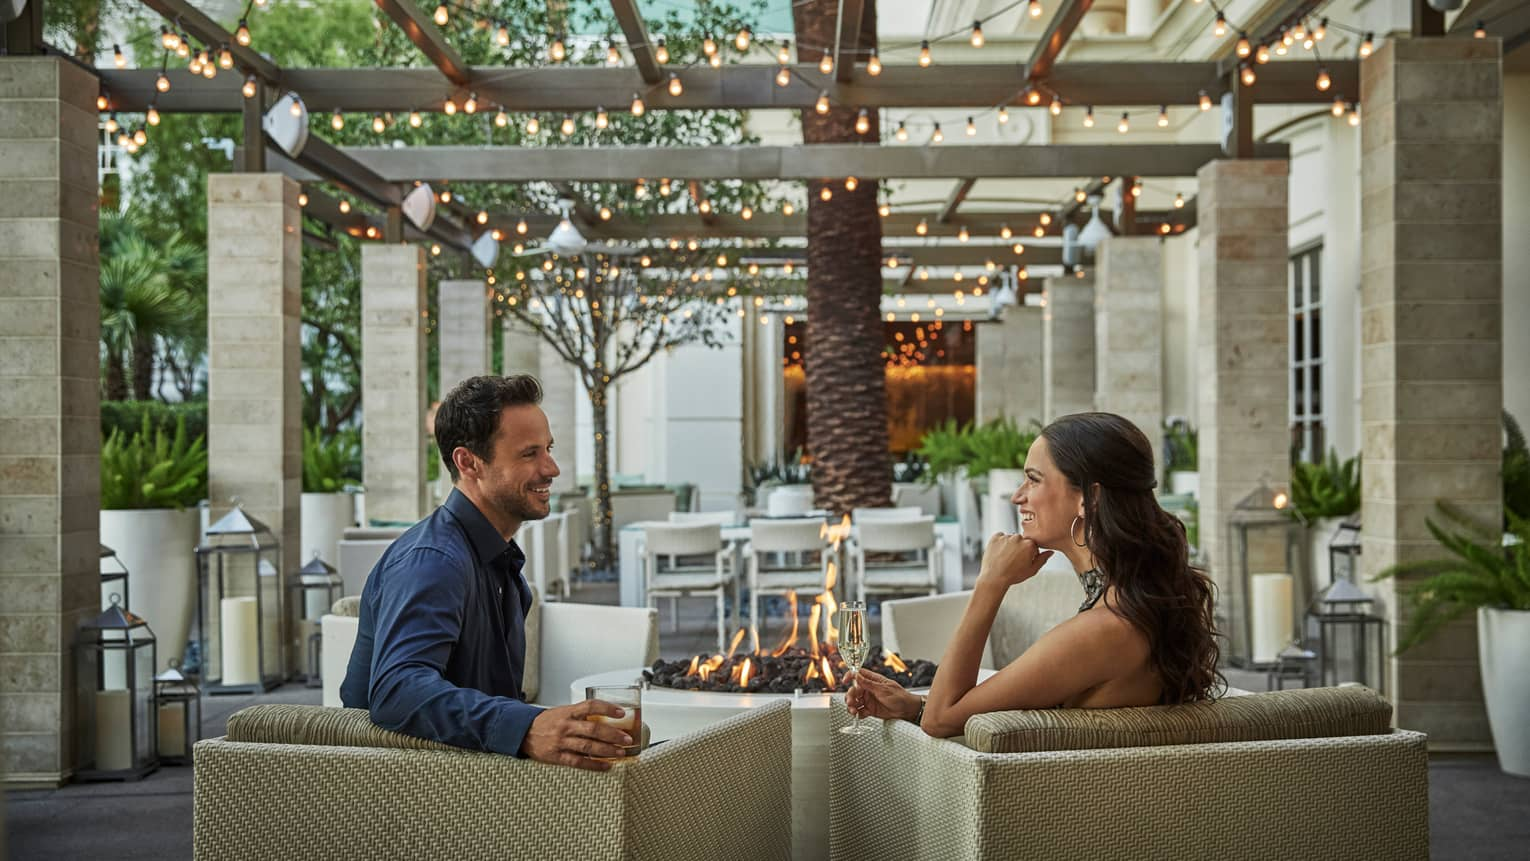 Couple with cocktails sit on patio armchairs by outdoor fireplace under pergola